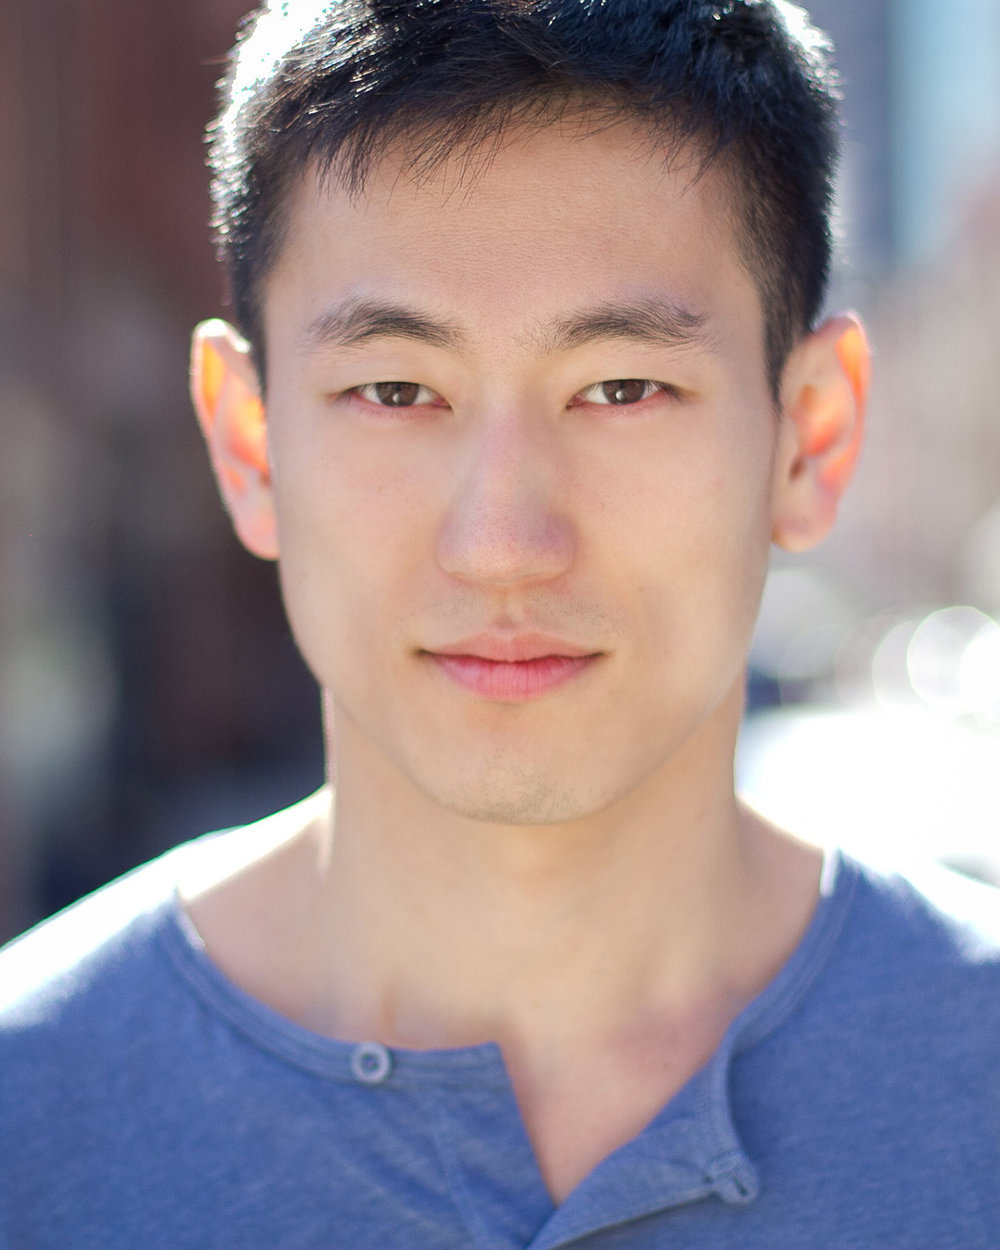 "JAKE CHOI as Daniel - Jake Choi is an actor who has performed through out New York City on stage, film, tv and national commercials. A versatile talent, he has a recurring role on TV's ""Younger"" and has appeared in ""Broad City"" and ""Gotham"" as well as on film as a Korean TV newscaster in Money Monster. Choi recently played a gangster on NBC's ""The Mysteries of Laura,"" and he displayed his romantic leading man chops in the feature film Front Cover. In this delightful romantic comedy-drama available on Netflix, Choi shows his deft comic timing as Ryan, a gay stylist hired to makeover a reluctant Chinese actor, Ning (James Chen). The film raises important questions about the representation of Asians in media. He is thrilled to be playing the romantic lead again in Lust Life, which also raises important questions about relationships and diversity in film."